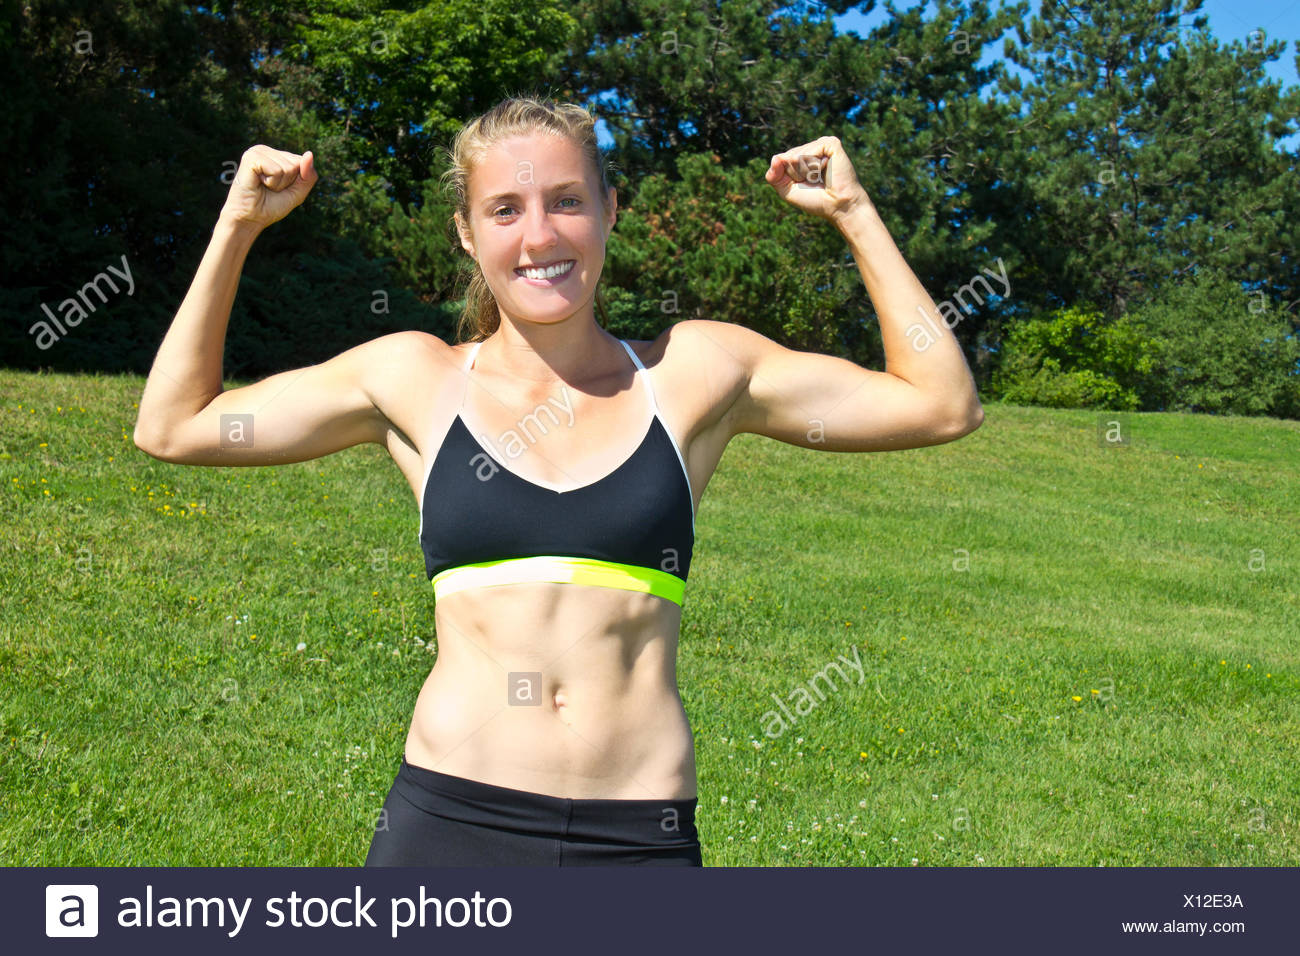 Fit, athletic woman flexing her muscles - Stock Image